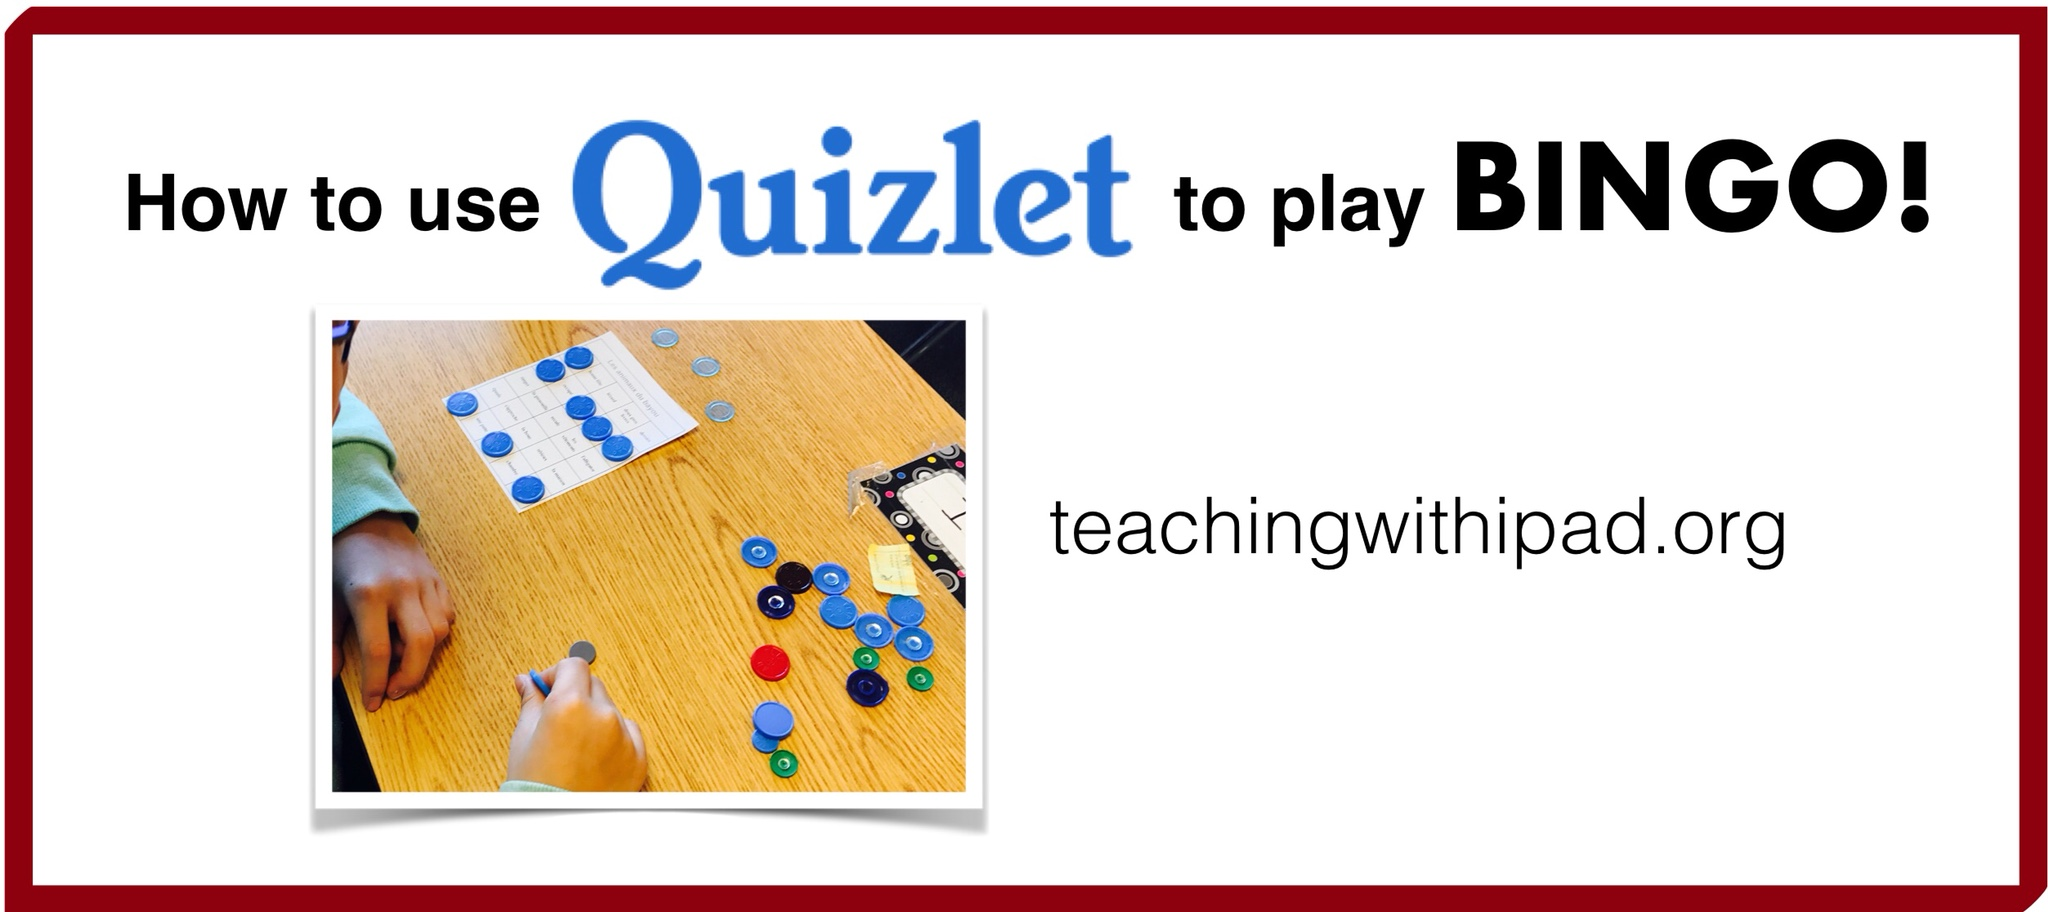 Use Quizlet to Play Bingo in your Classes! – teachingwithipad org